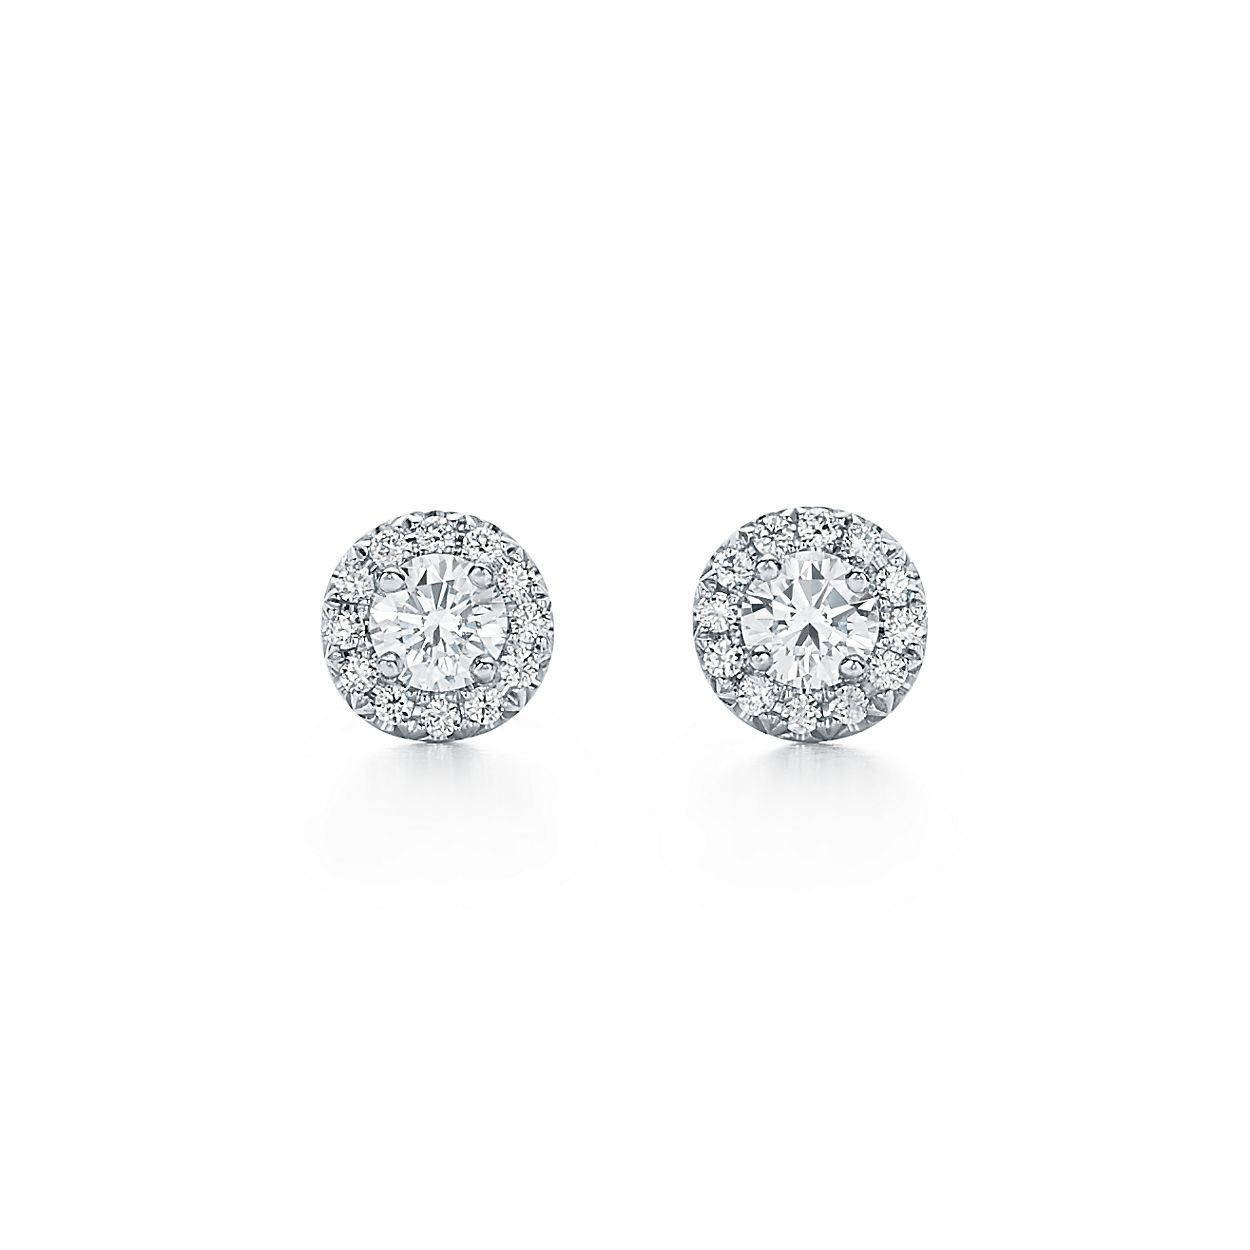 en high collections jewellery categories jewelry diamond cartier diamonds platinum collection earrings sg earringsplatinum